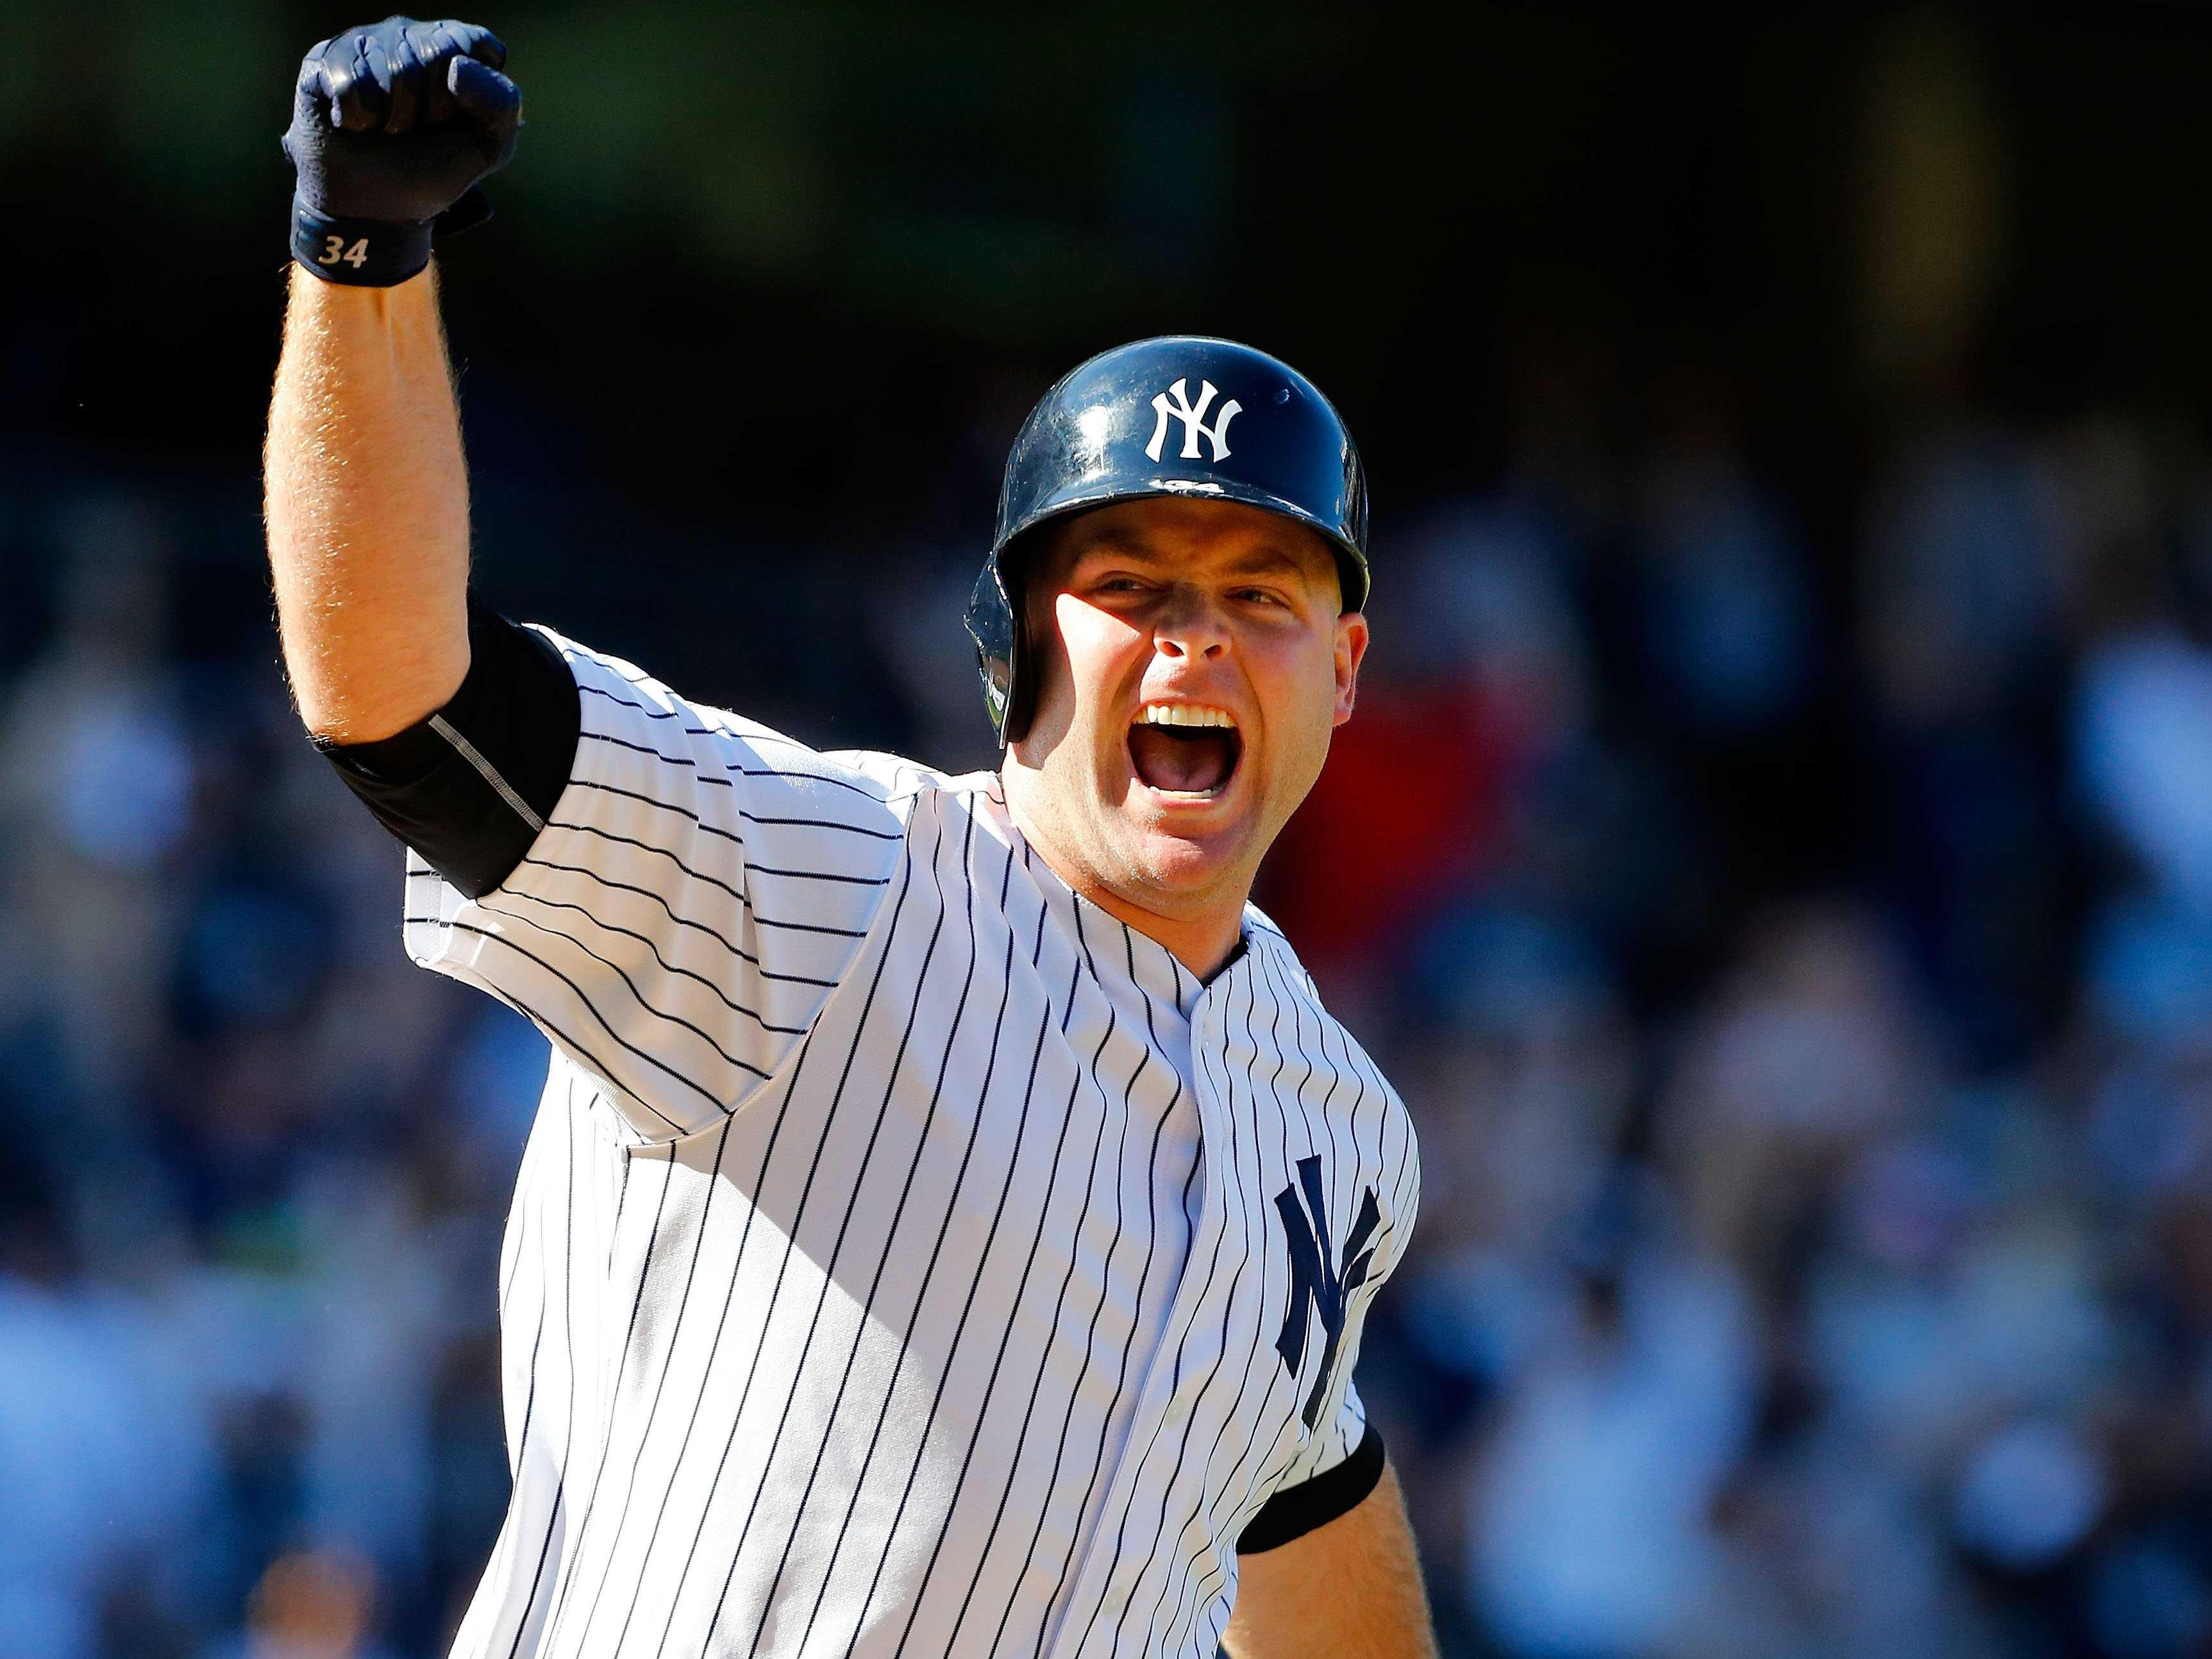 The New York Yankees are now worth $3.2 billion